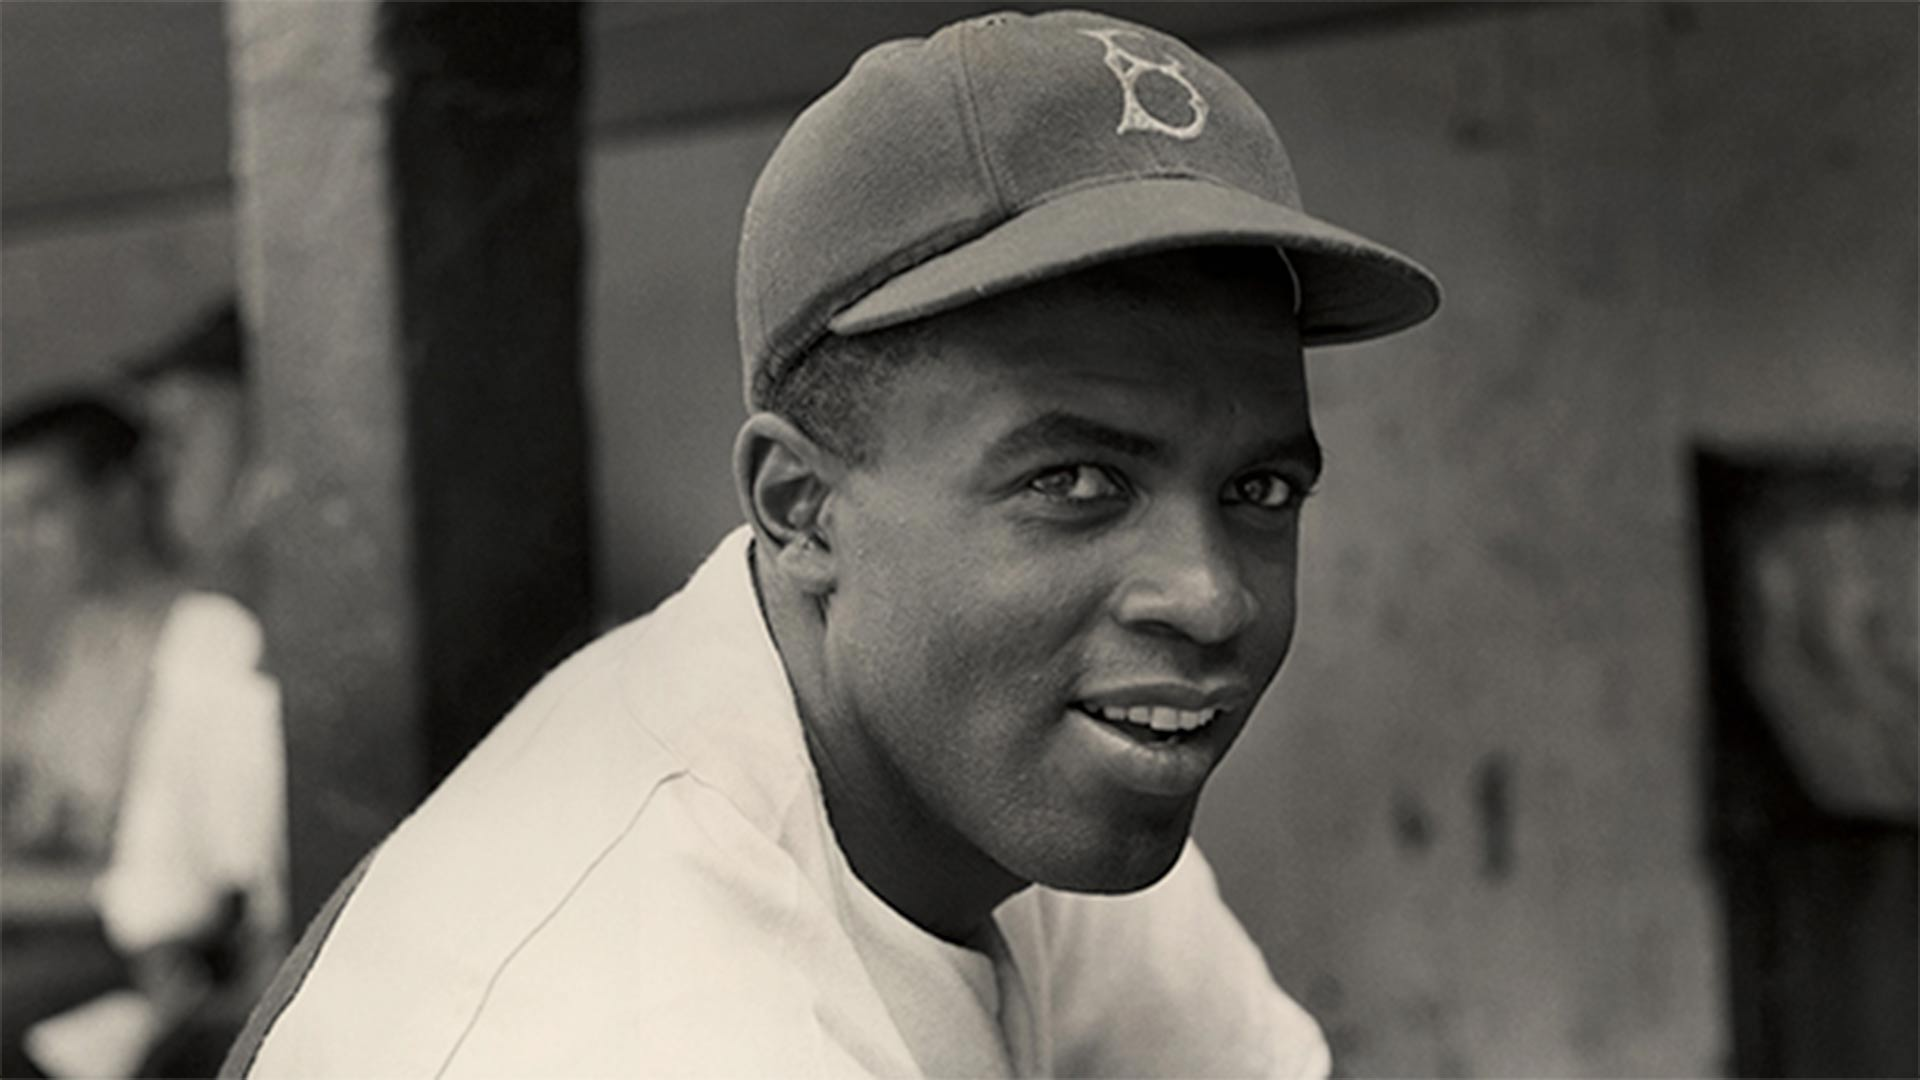 Jackie Robinson, Parts 1 & 2 air Sunday, February 10 & 17 @ 3pm on PBS 6.